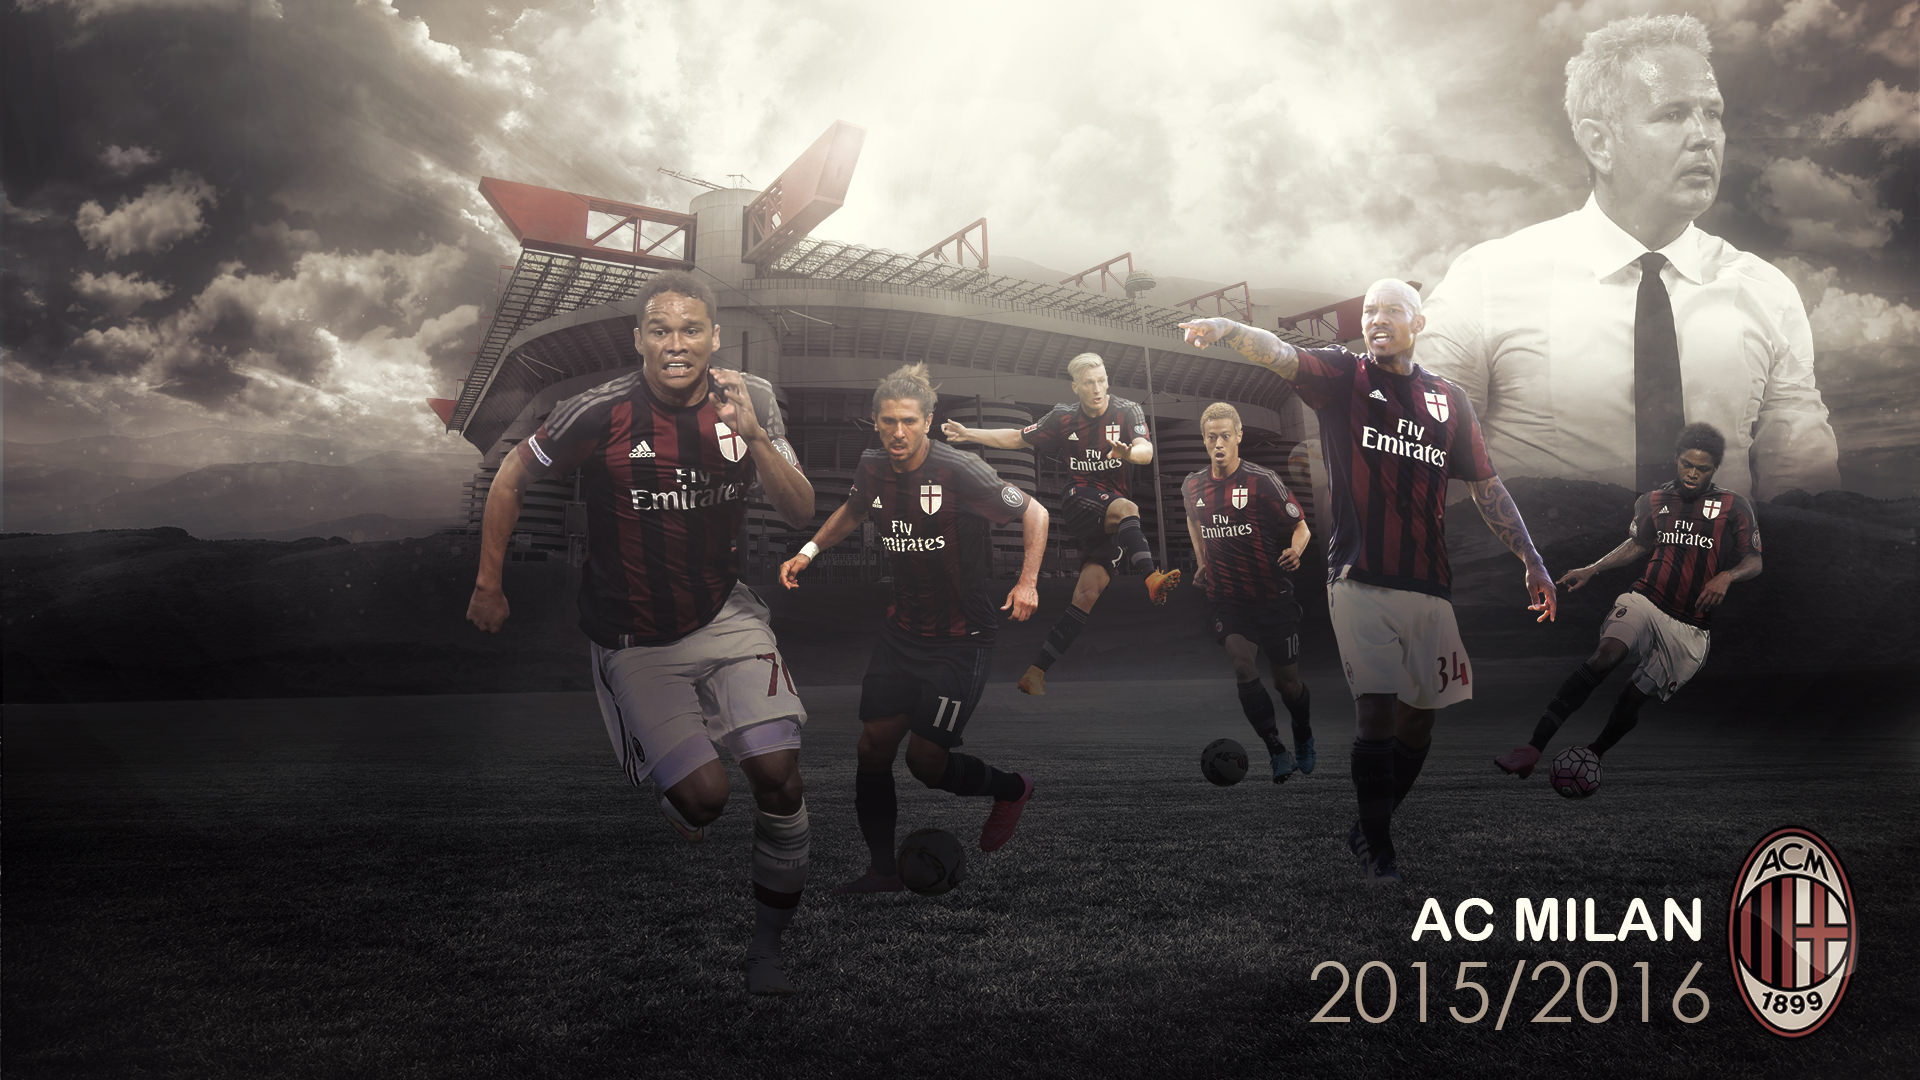 AC Milan 20152016 Wallpaper   Football Wallpapers HD 1920x1080